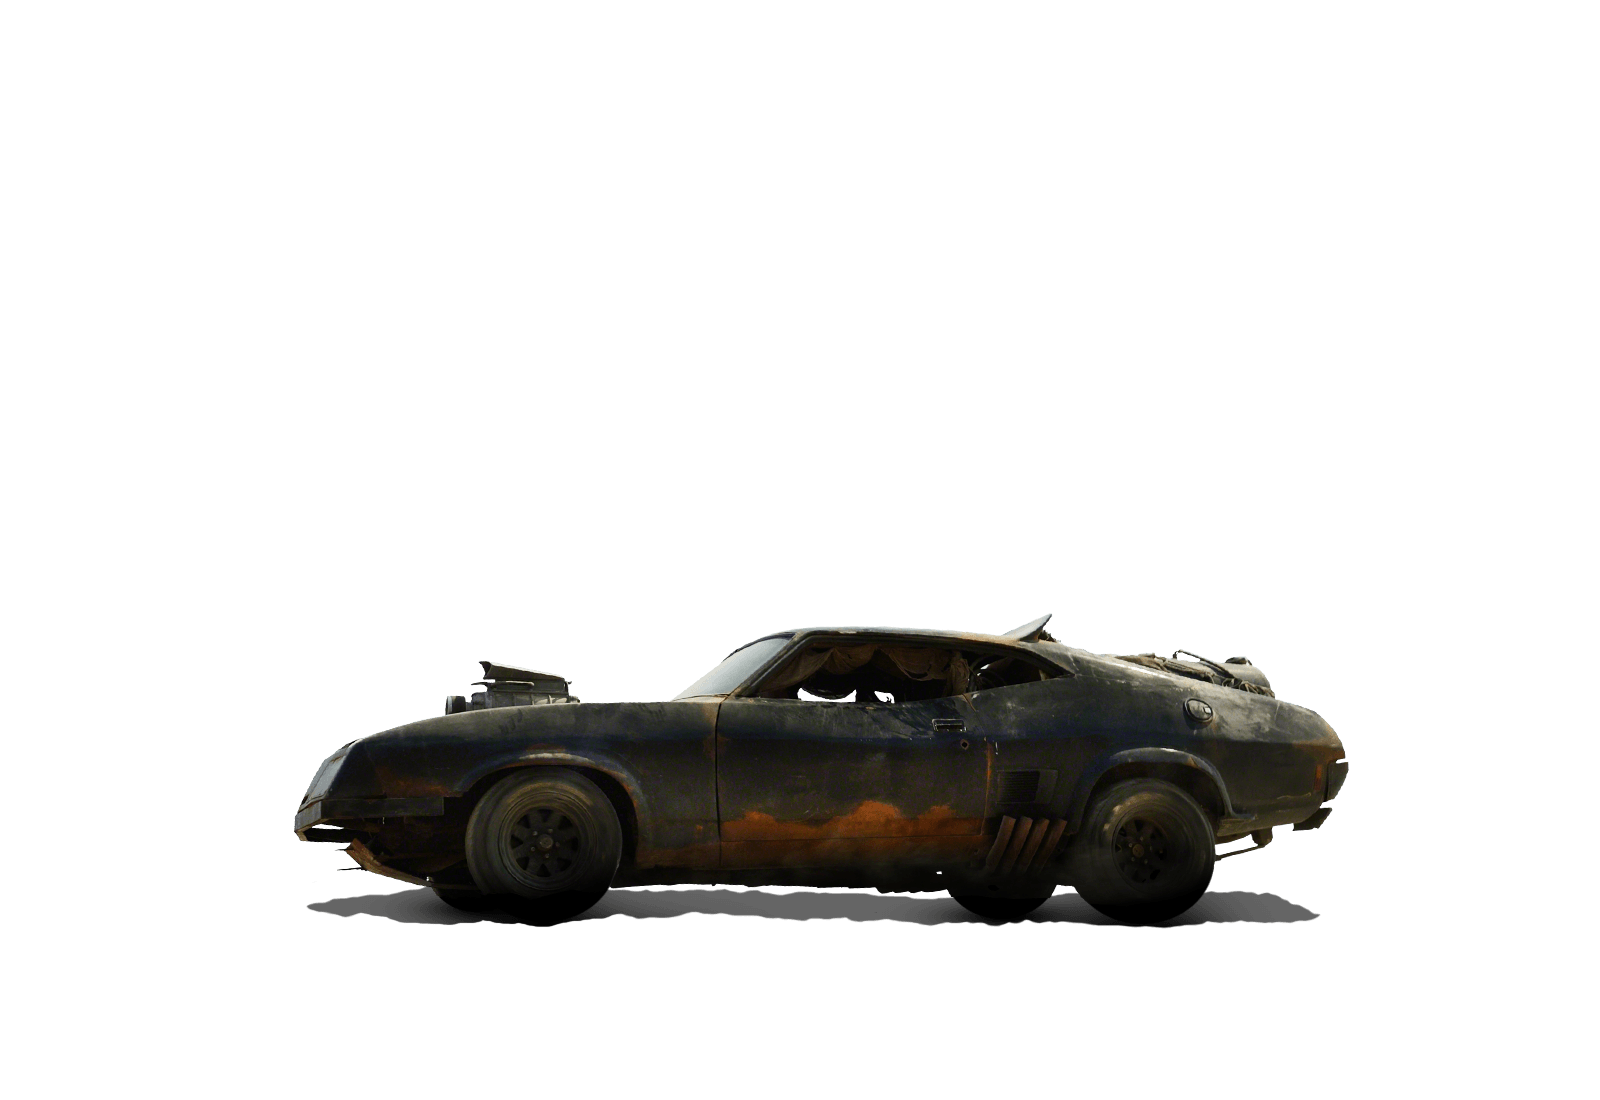 The Cars Of Mad Max Fury Road Will Give You Nightmares Maxim Mad Max Car Max Fury Road